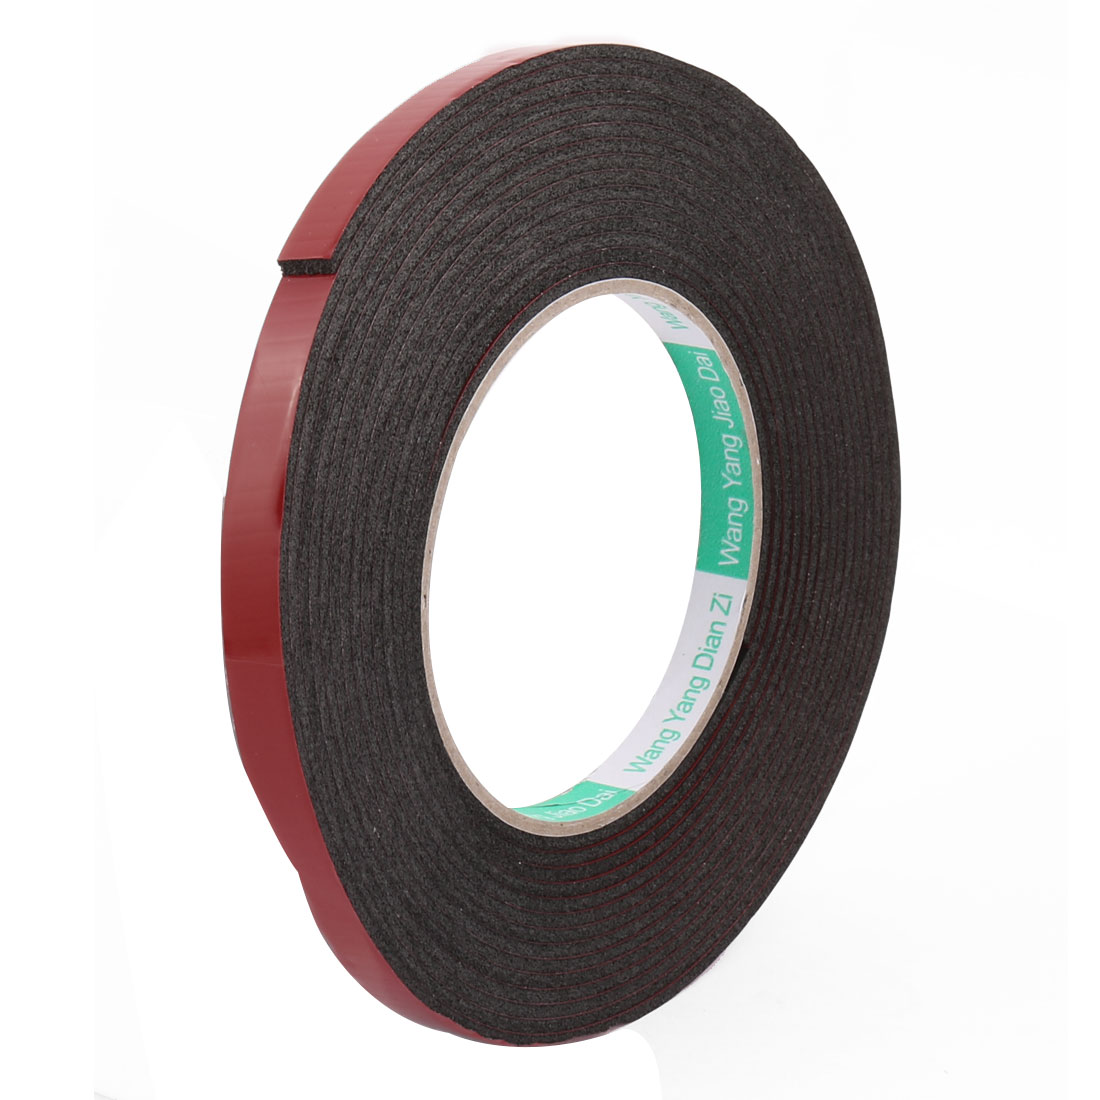 10mmx2mm Red Double Sided Sponge Tape Adhesive Sticker Foam Glue Strip 5M Length